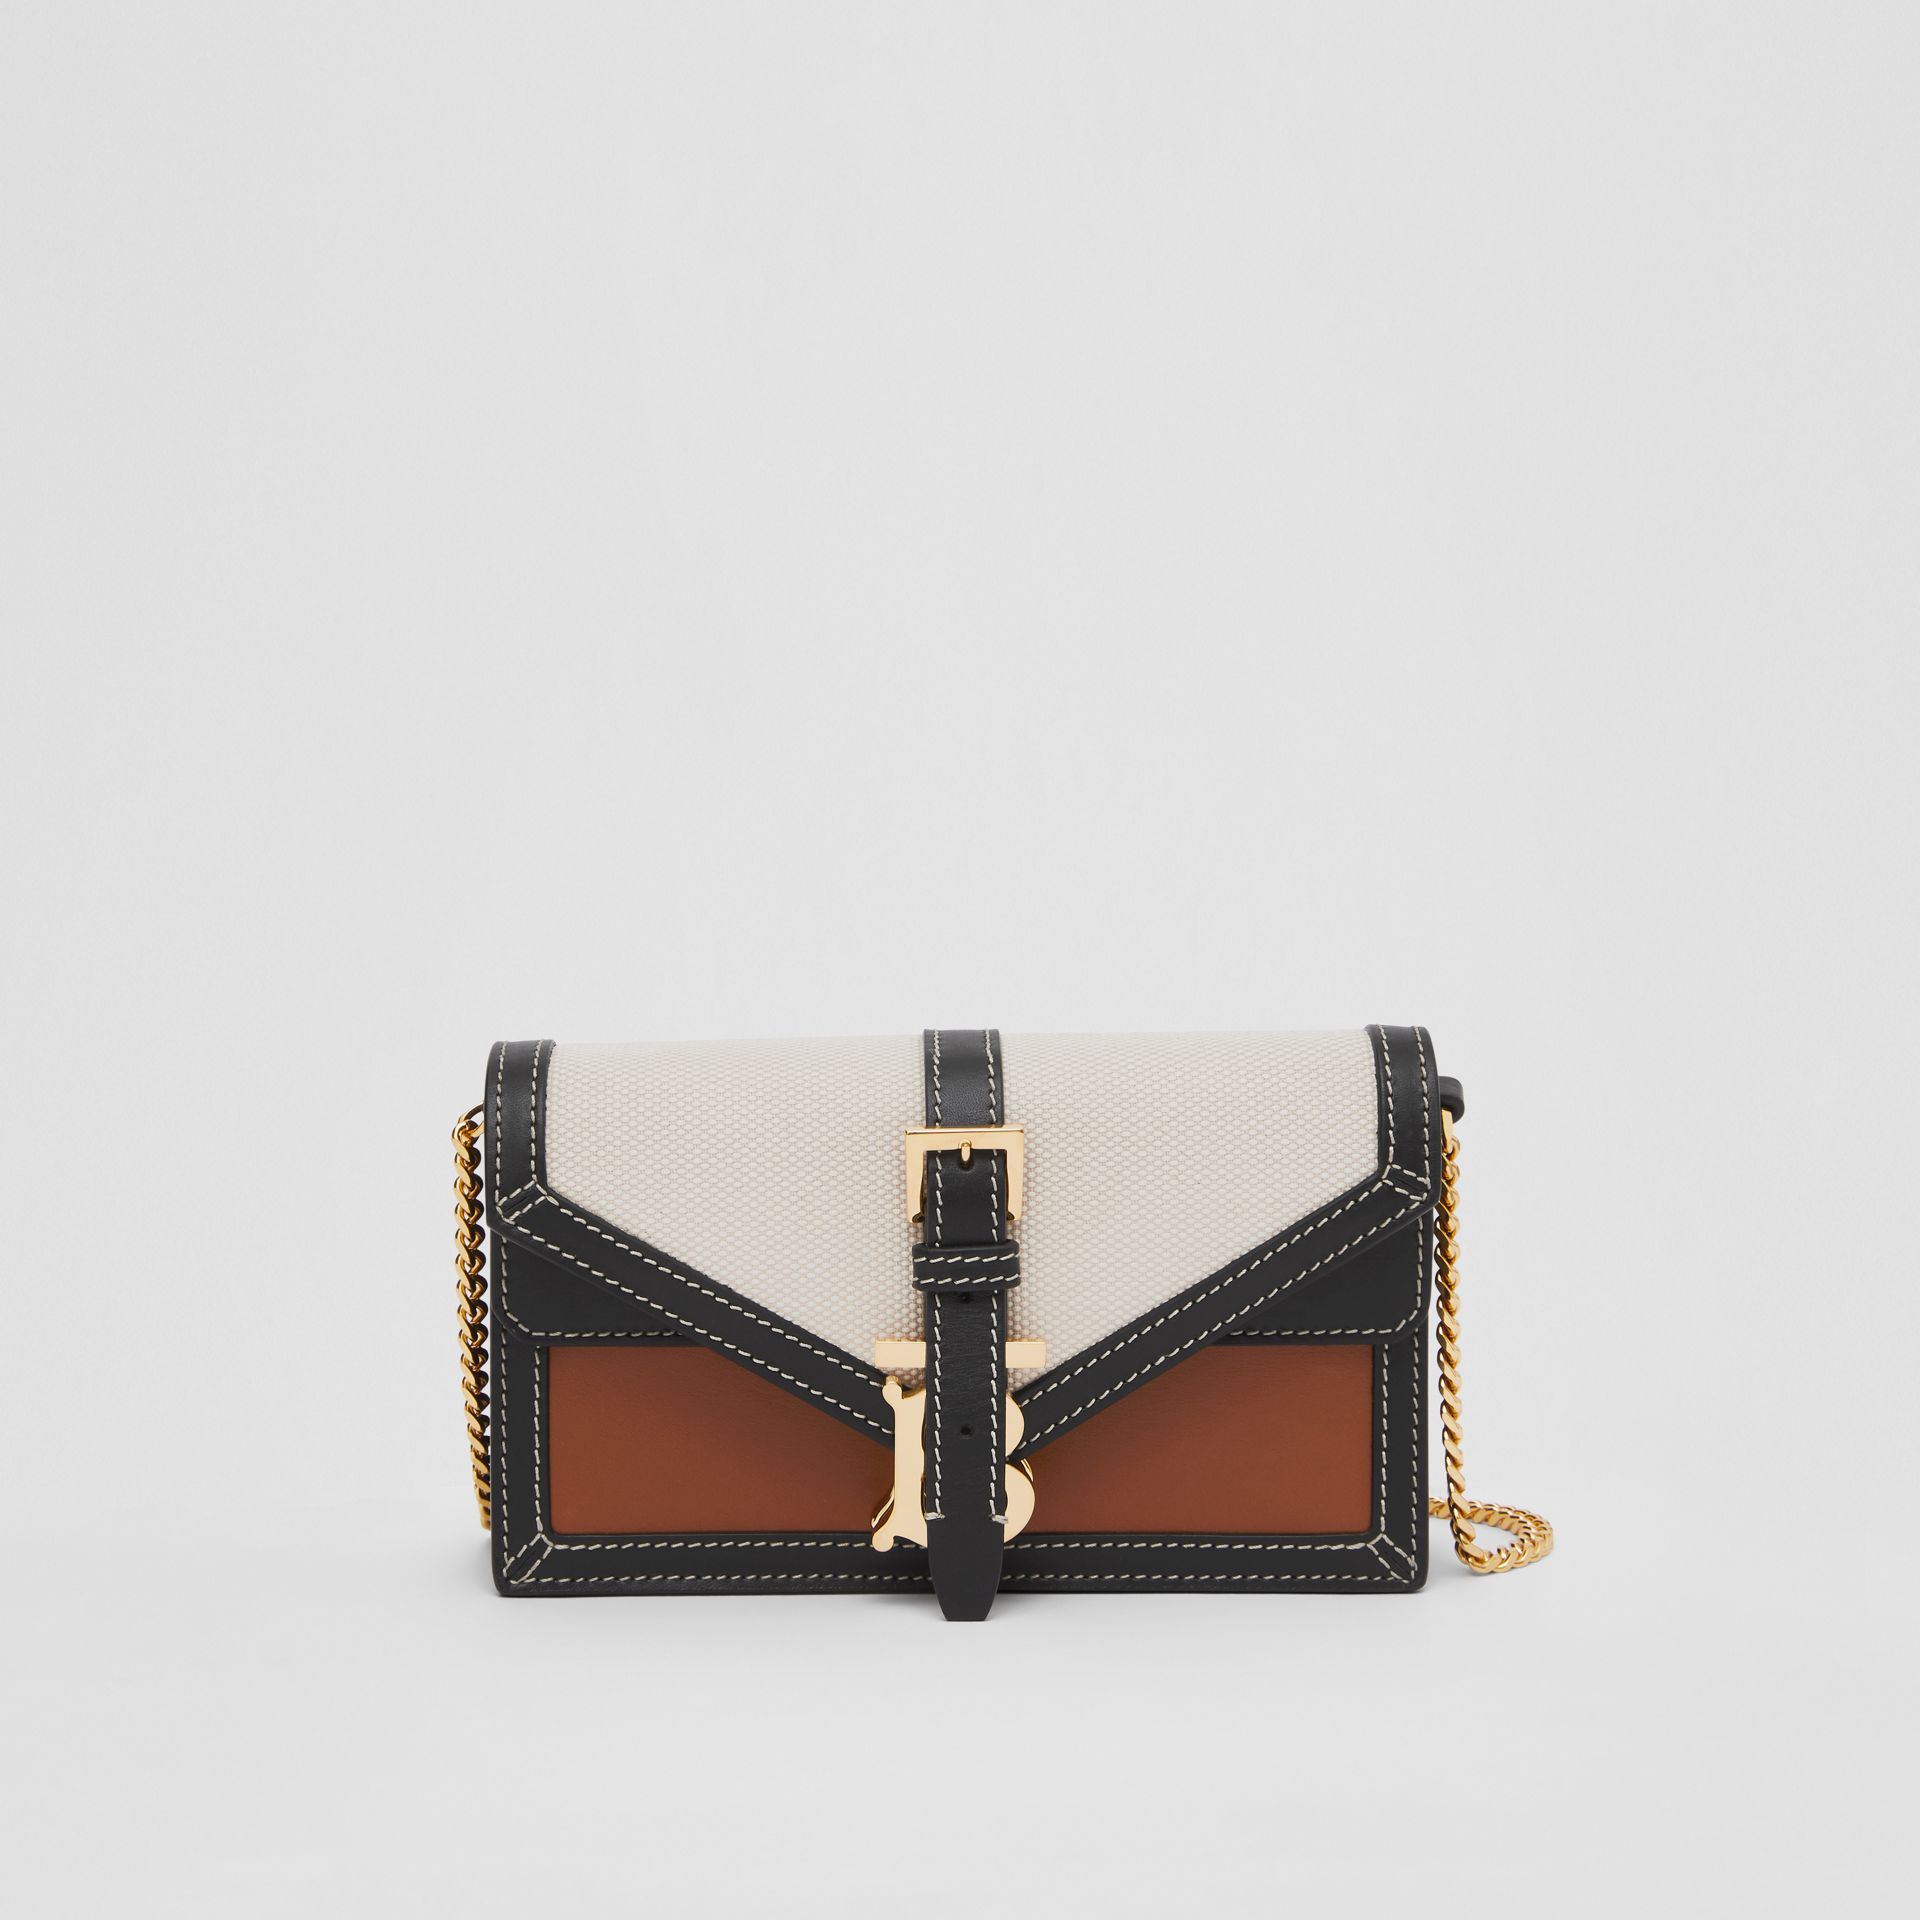 Mini Canvas and Leather TB Envelope Clutch in Tan - Women | Burberry Australia - gallery image 0